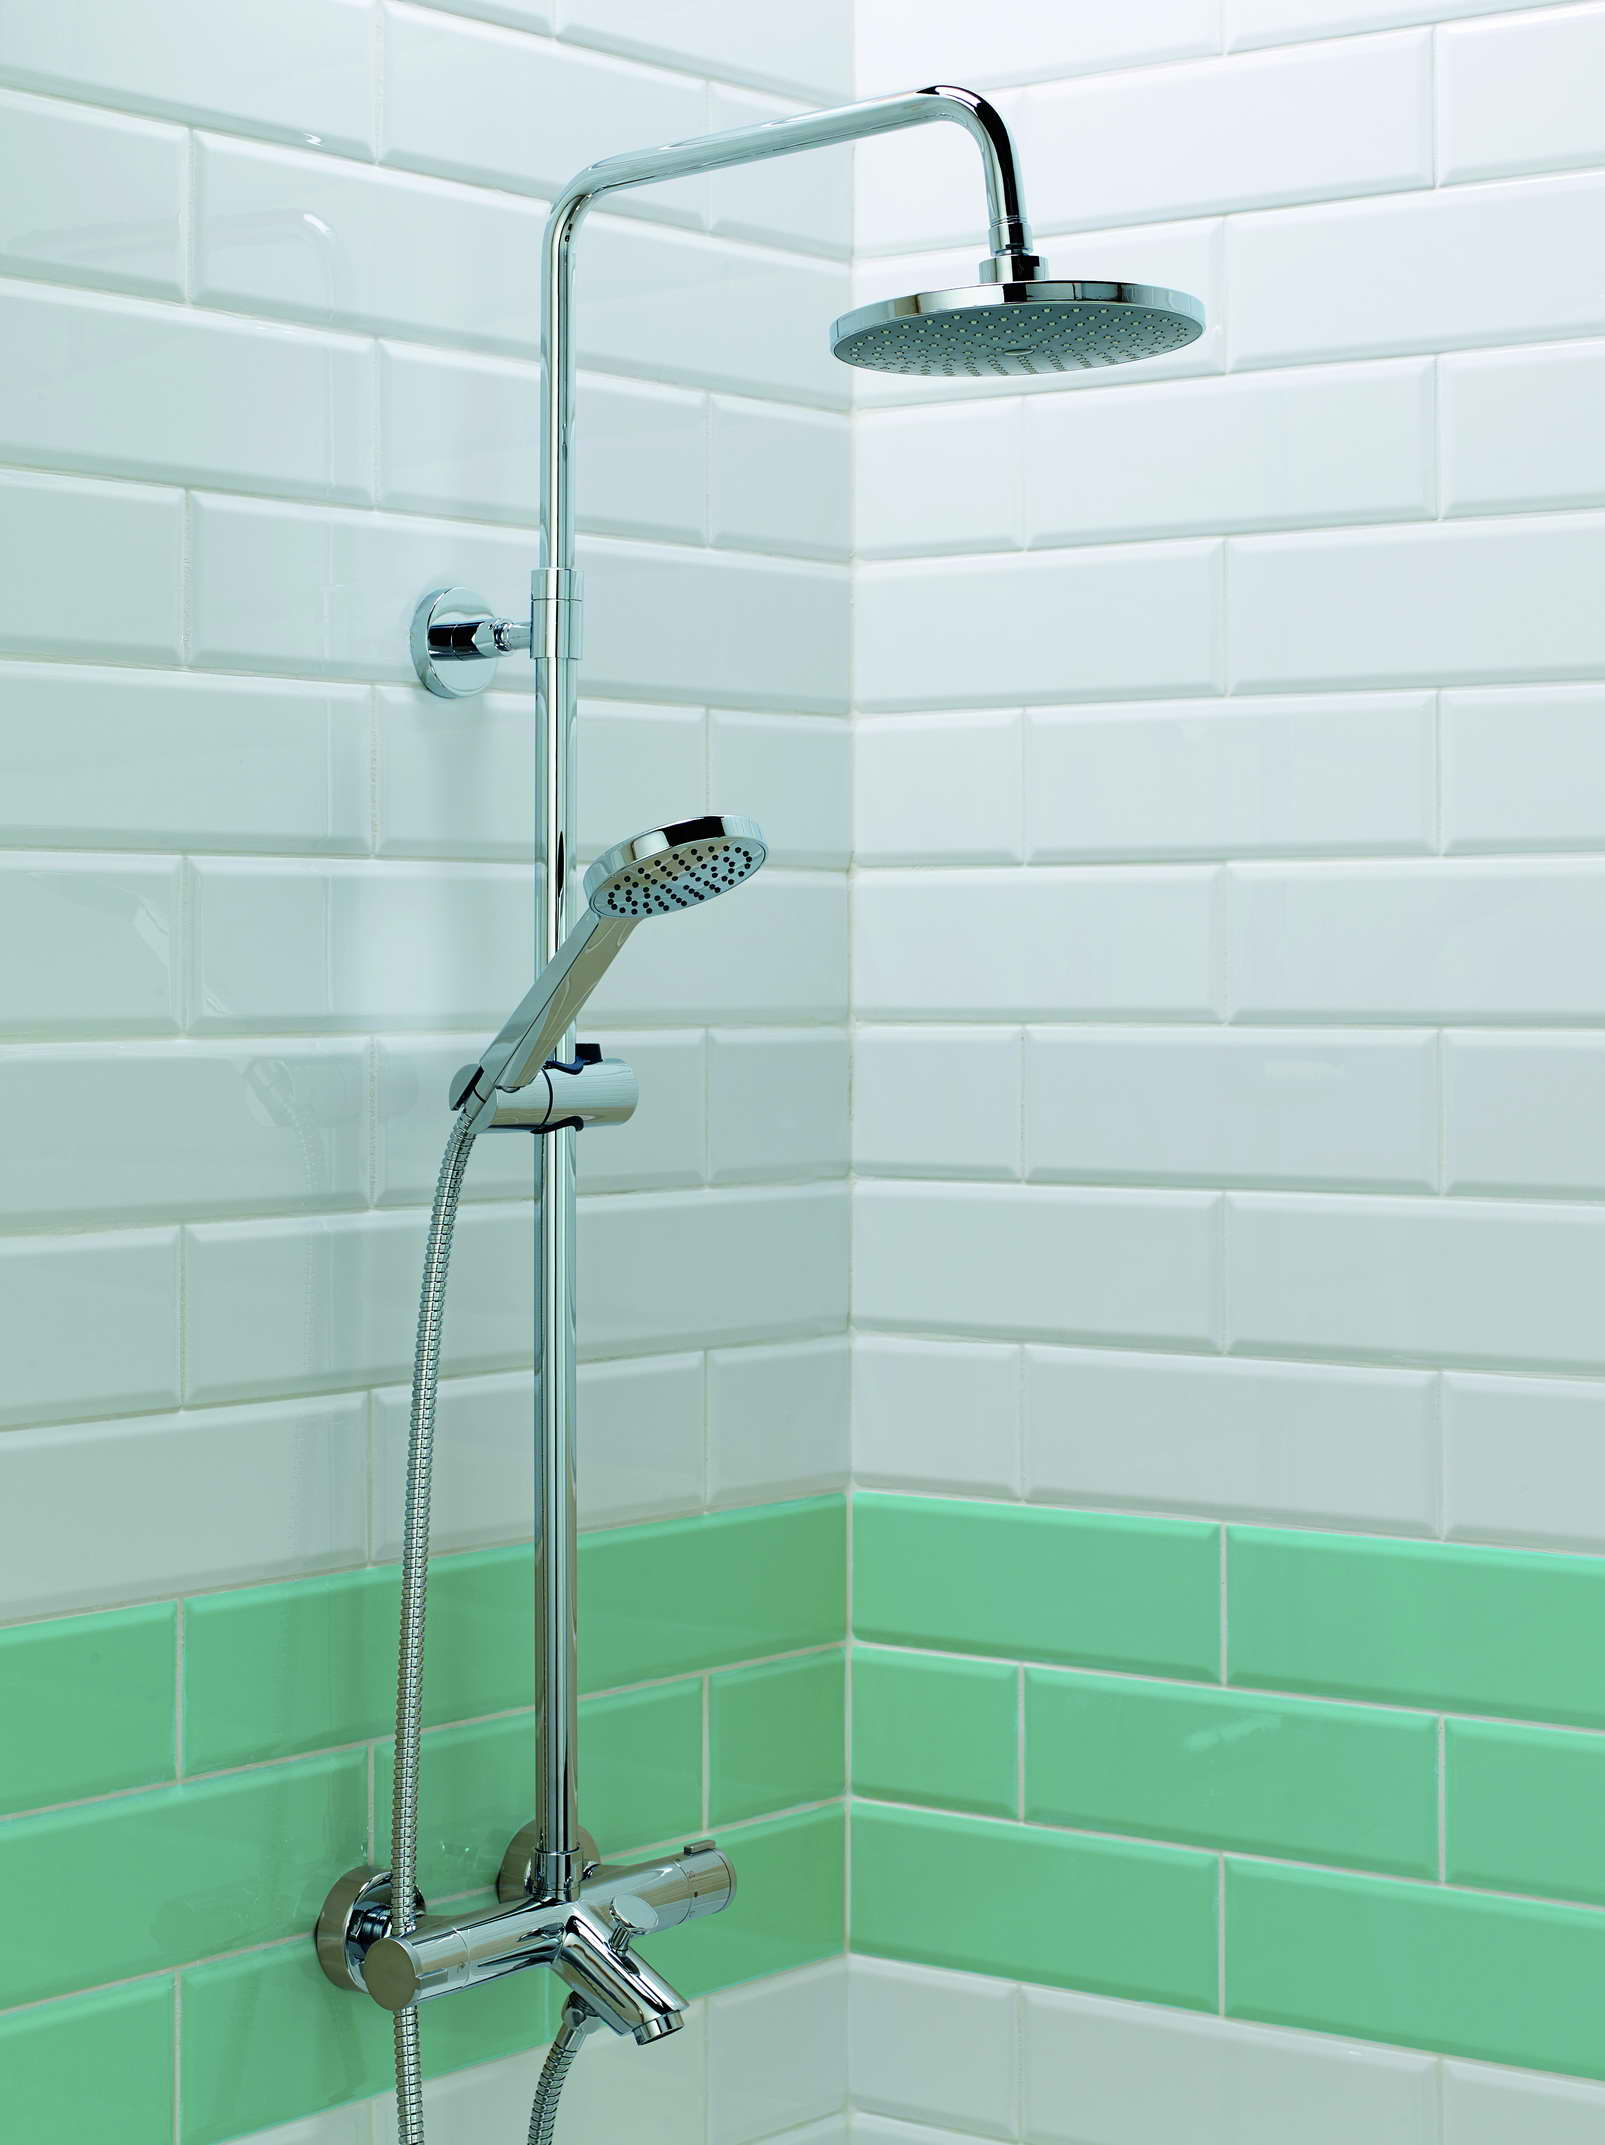 Bath With Shower Stroma Thermo Bath Shower Mixer Round Head With Fixed Rail Kit